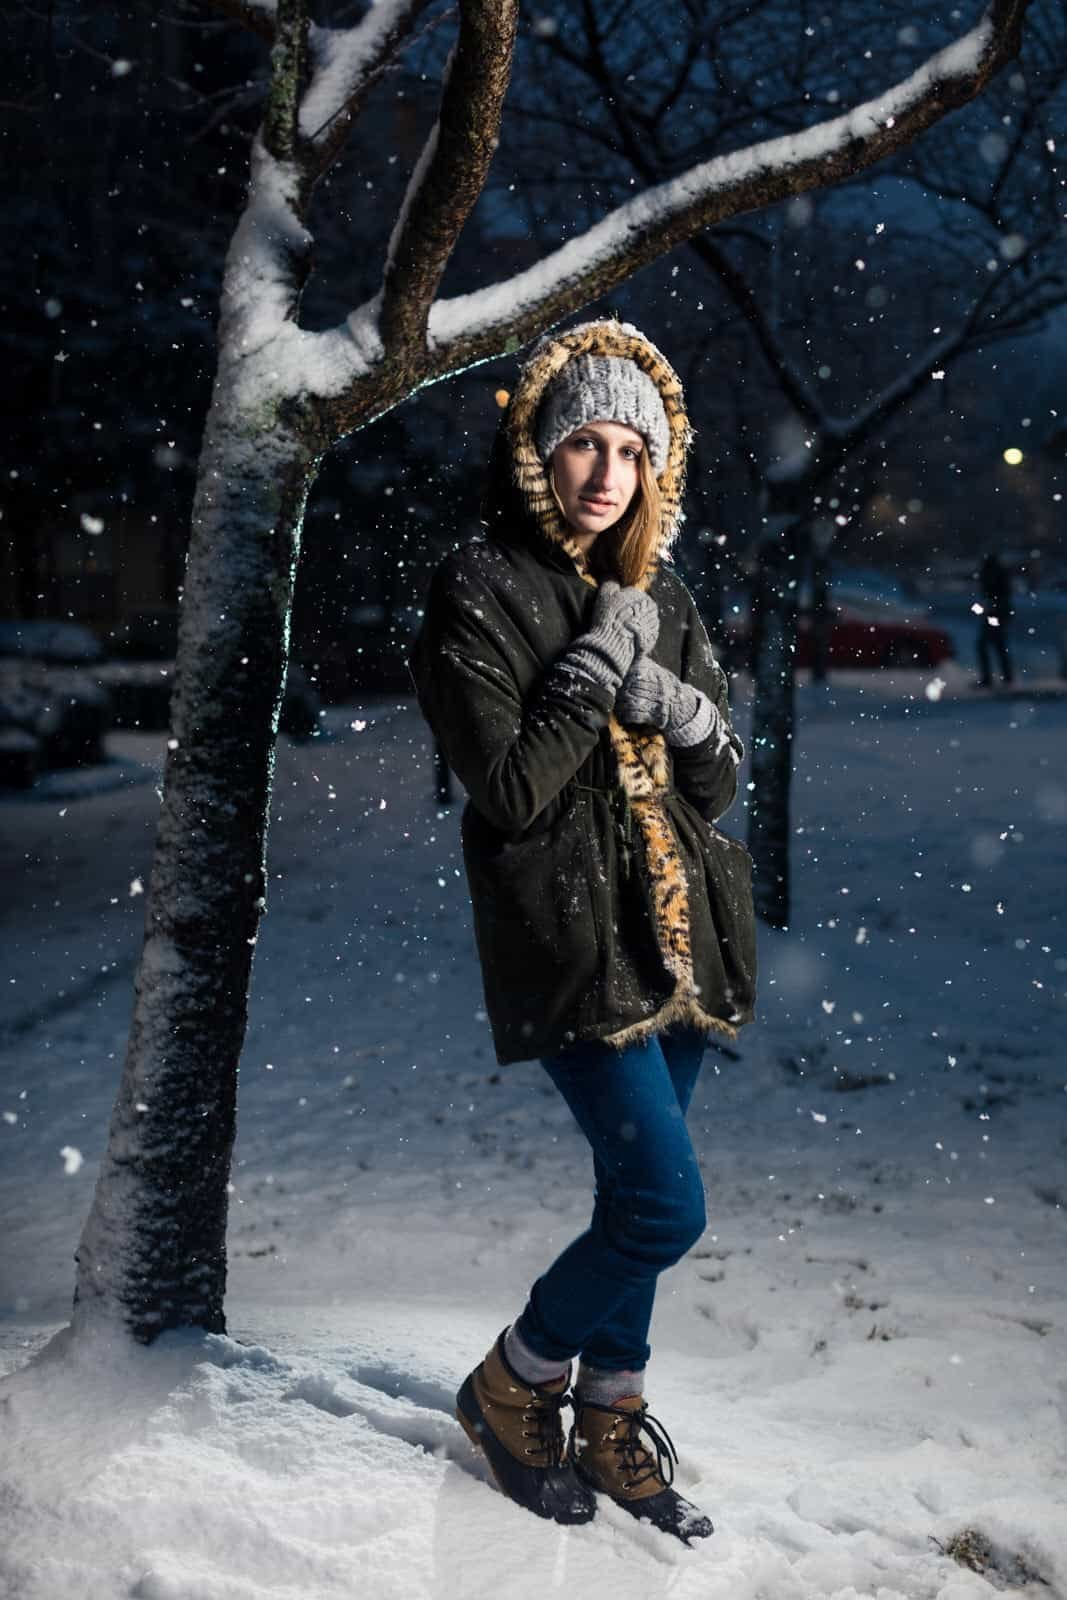 portrait of girl standinig in snow of Atlanta park